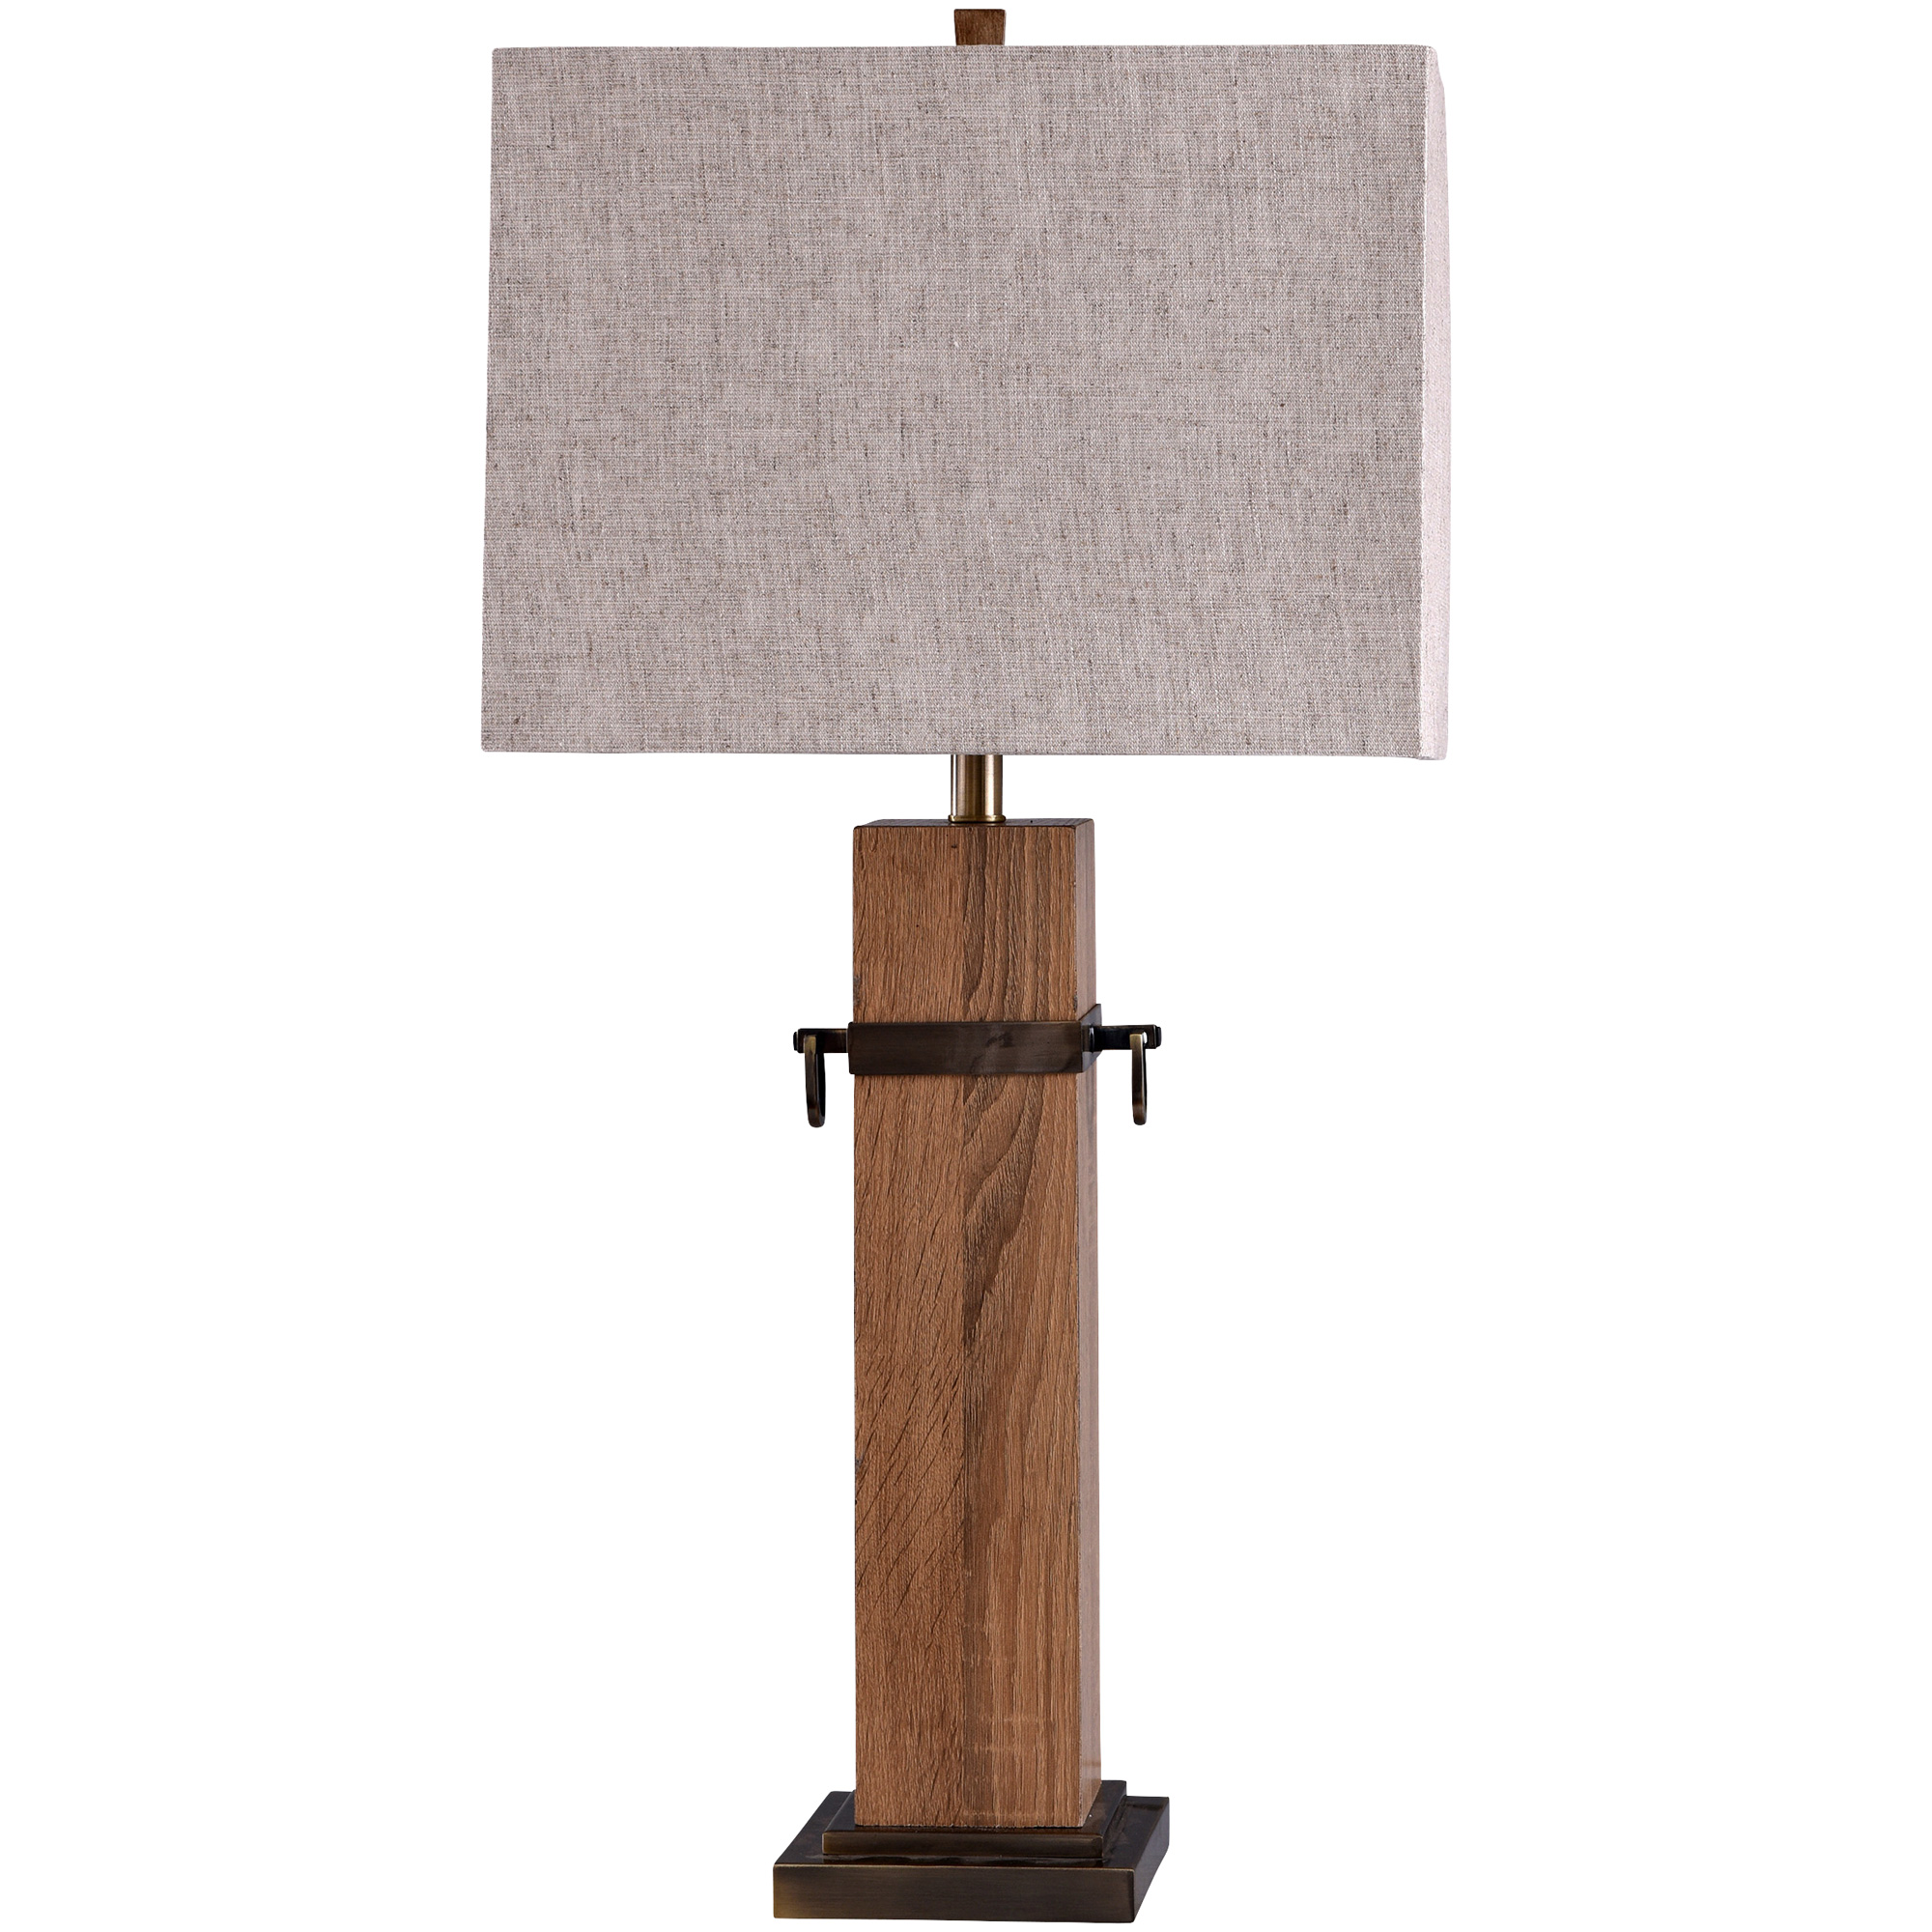 Stylecraft Home Collection | Cordia Brown Wood Table Lamp